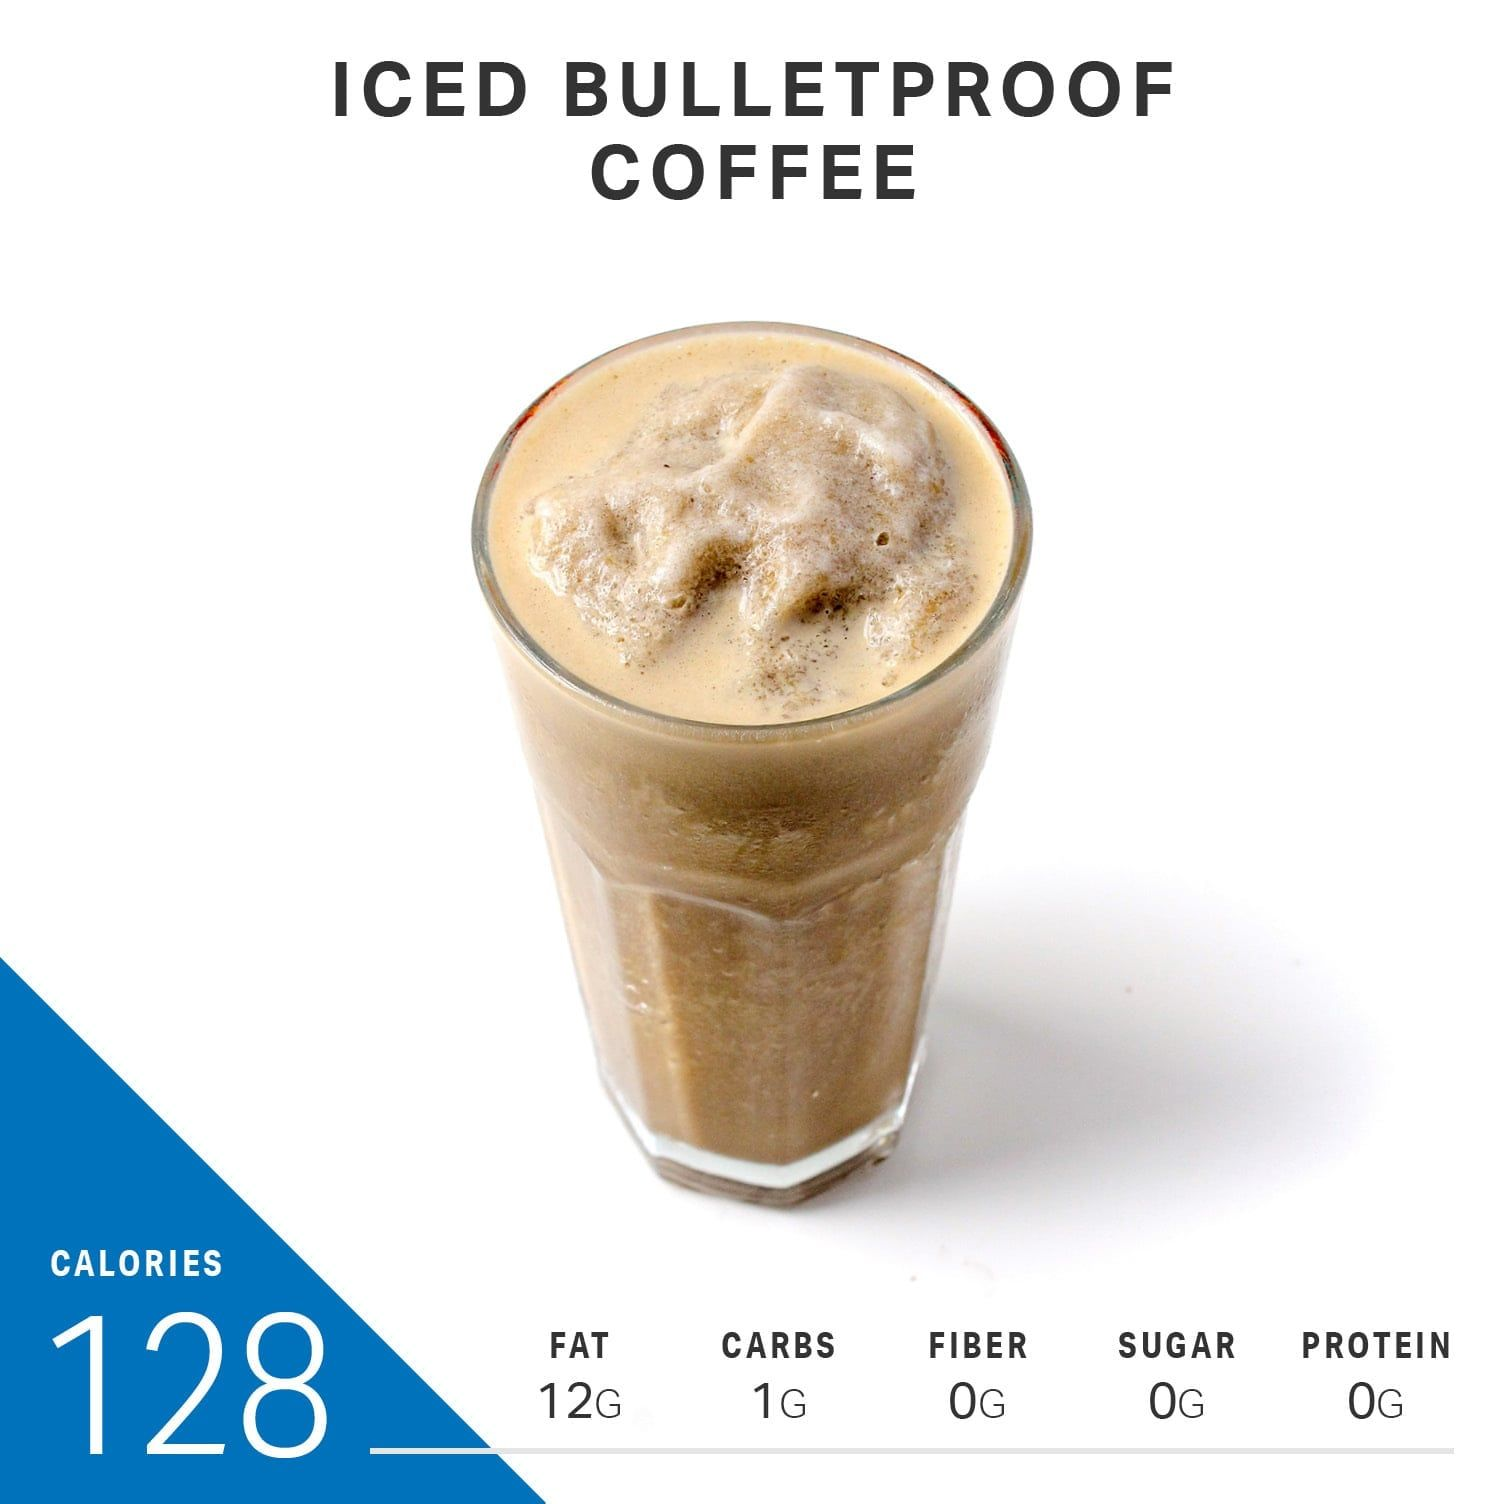 Iced bulletproof coffee keto and low carb recipe